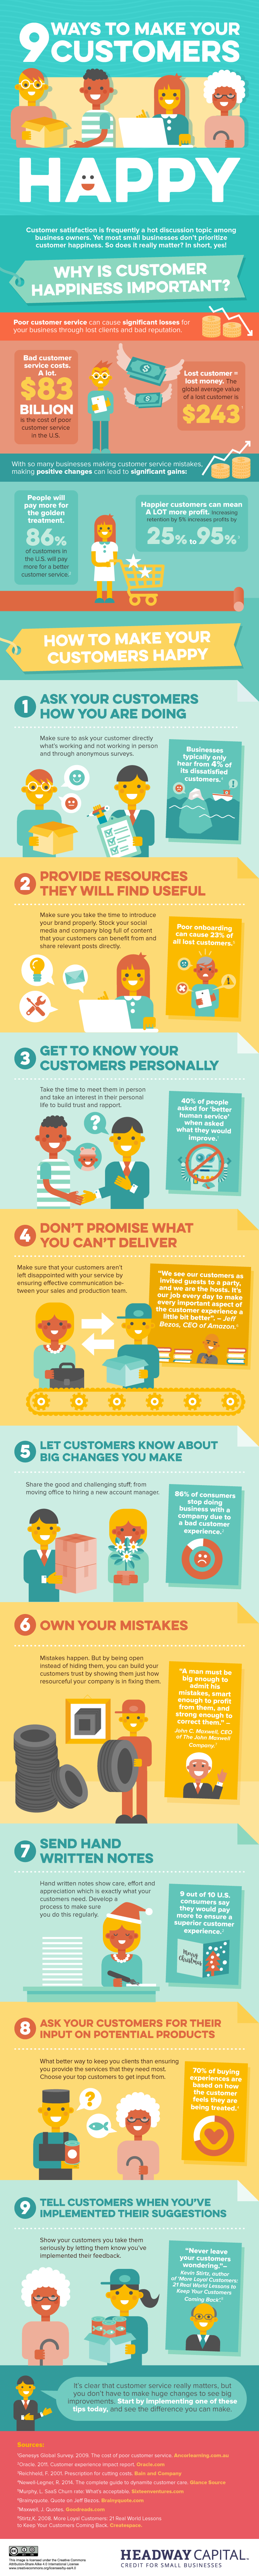 9 Ways to Make Your Customers Happy (Infographic)